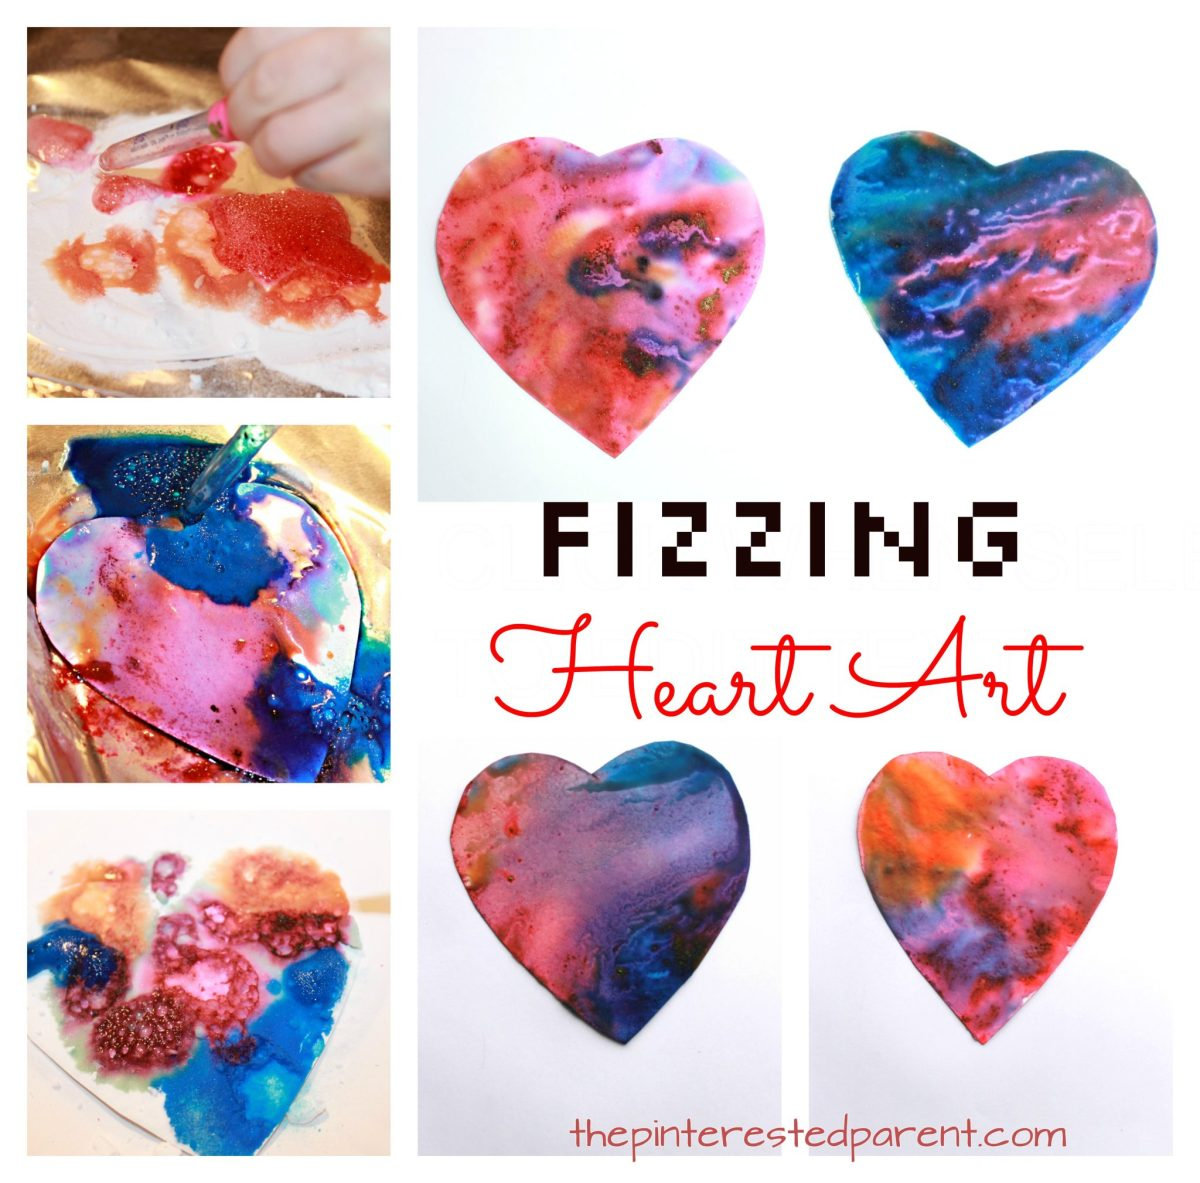 Fizzing Heart Art